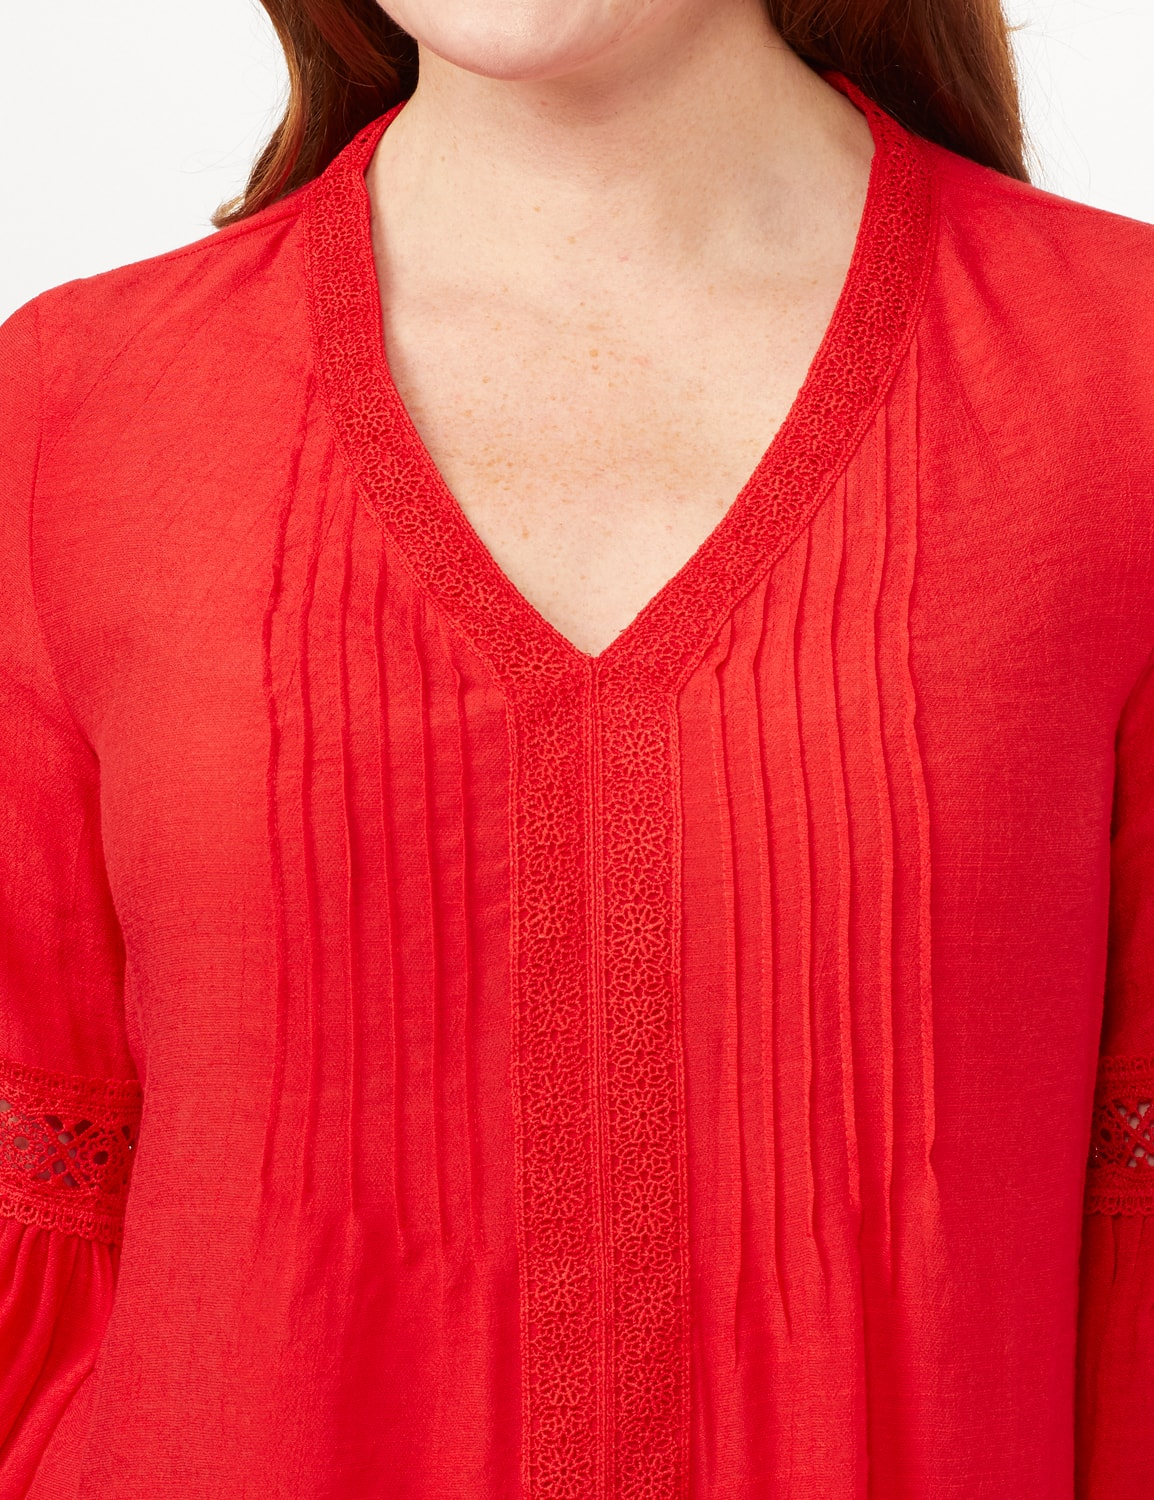 V-Neck Crochet Trim Texture Top - Red - Detail